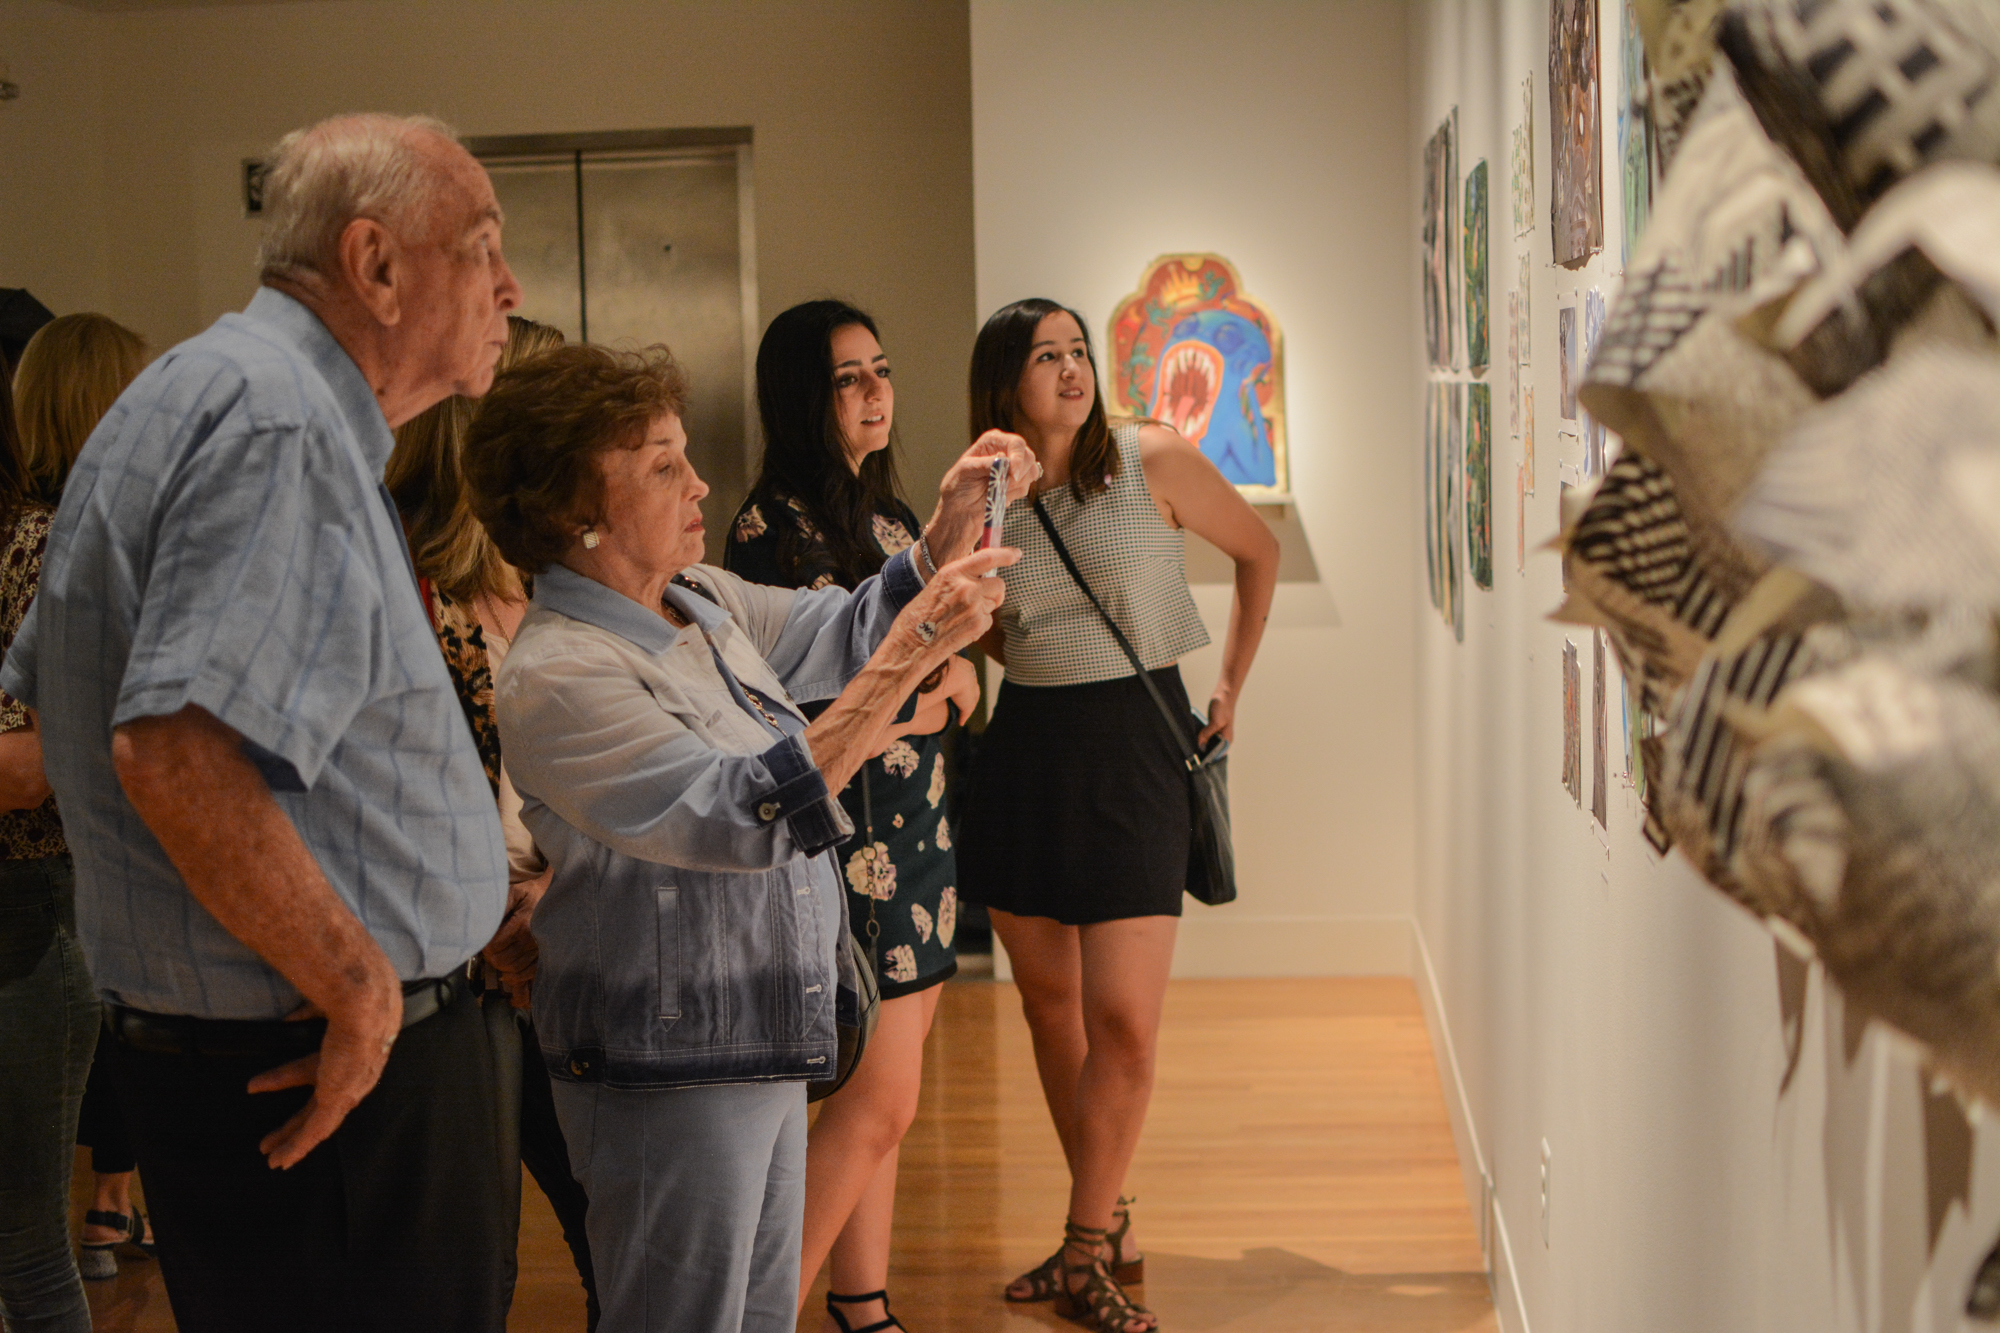 Some relatives of the artists were present and showcased their pride.